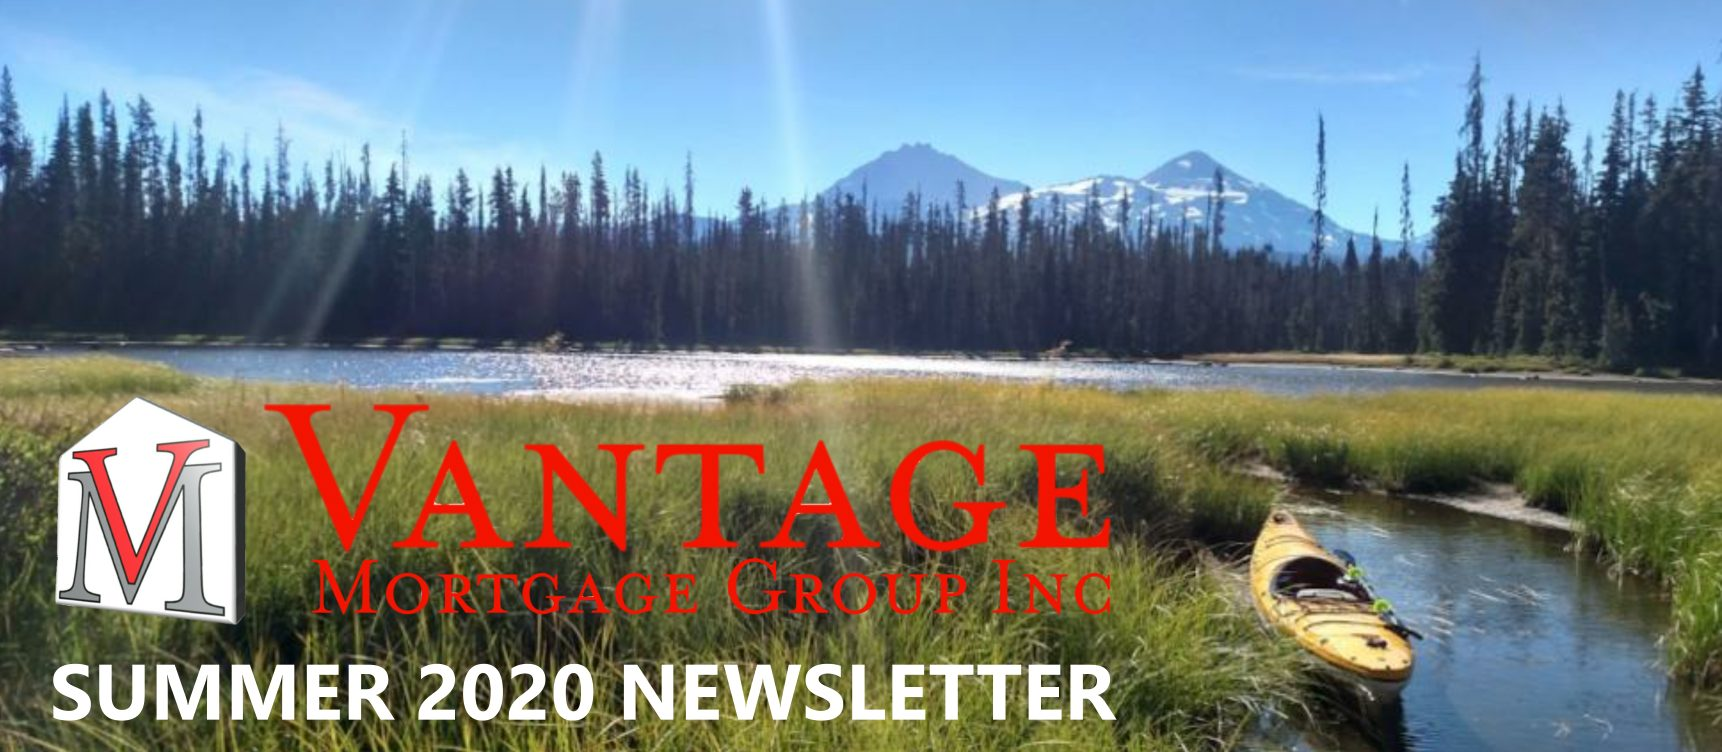 Vantage 2020 Summer Newsletter